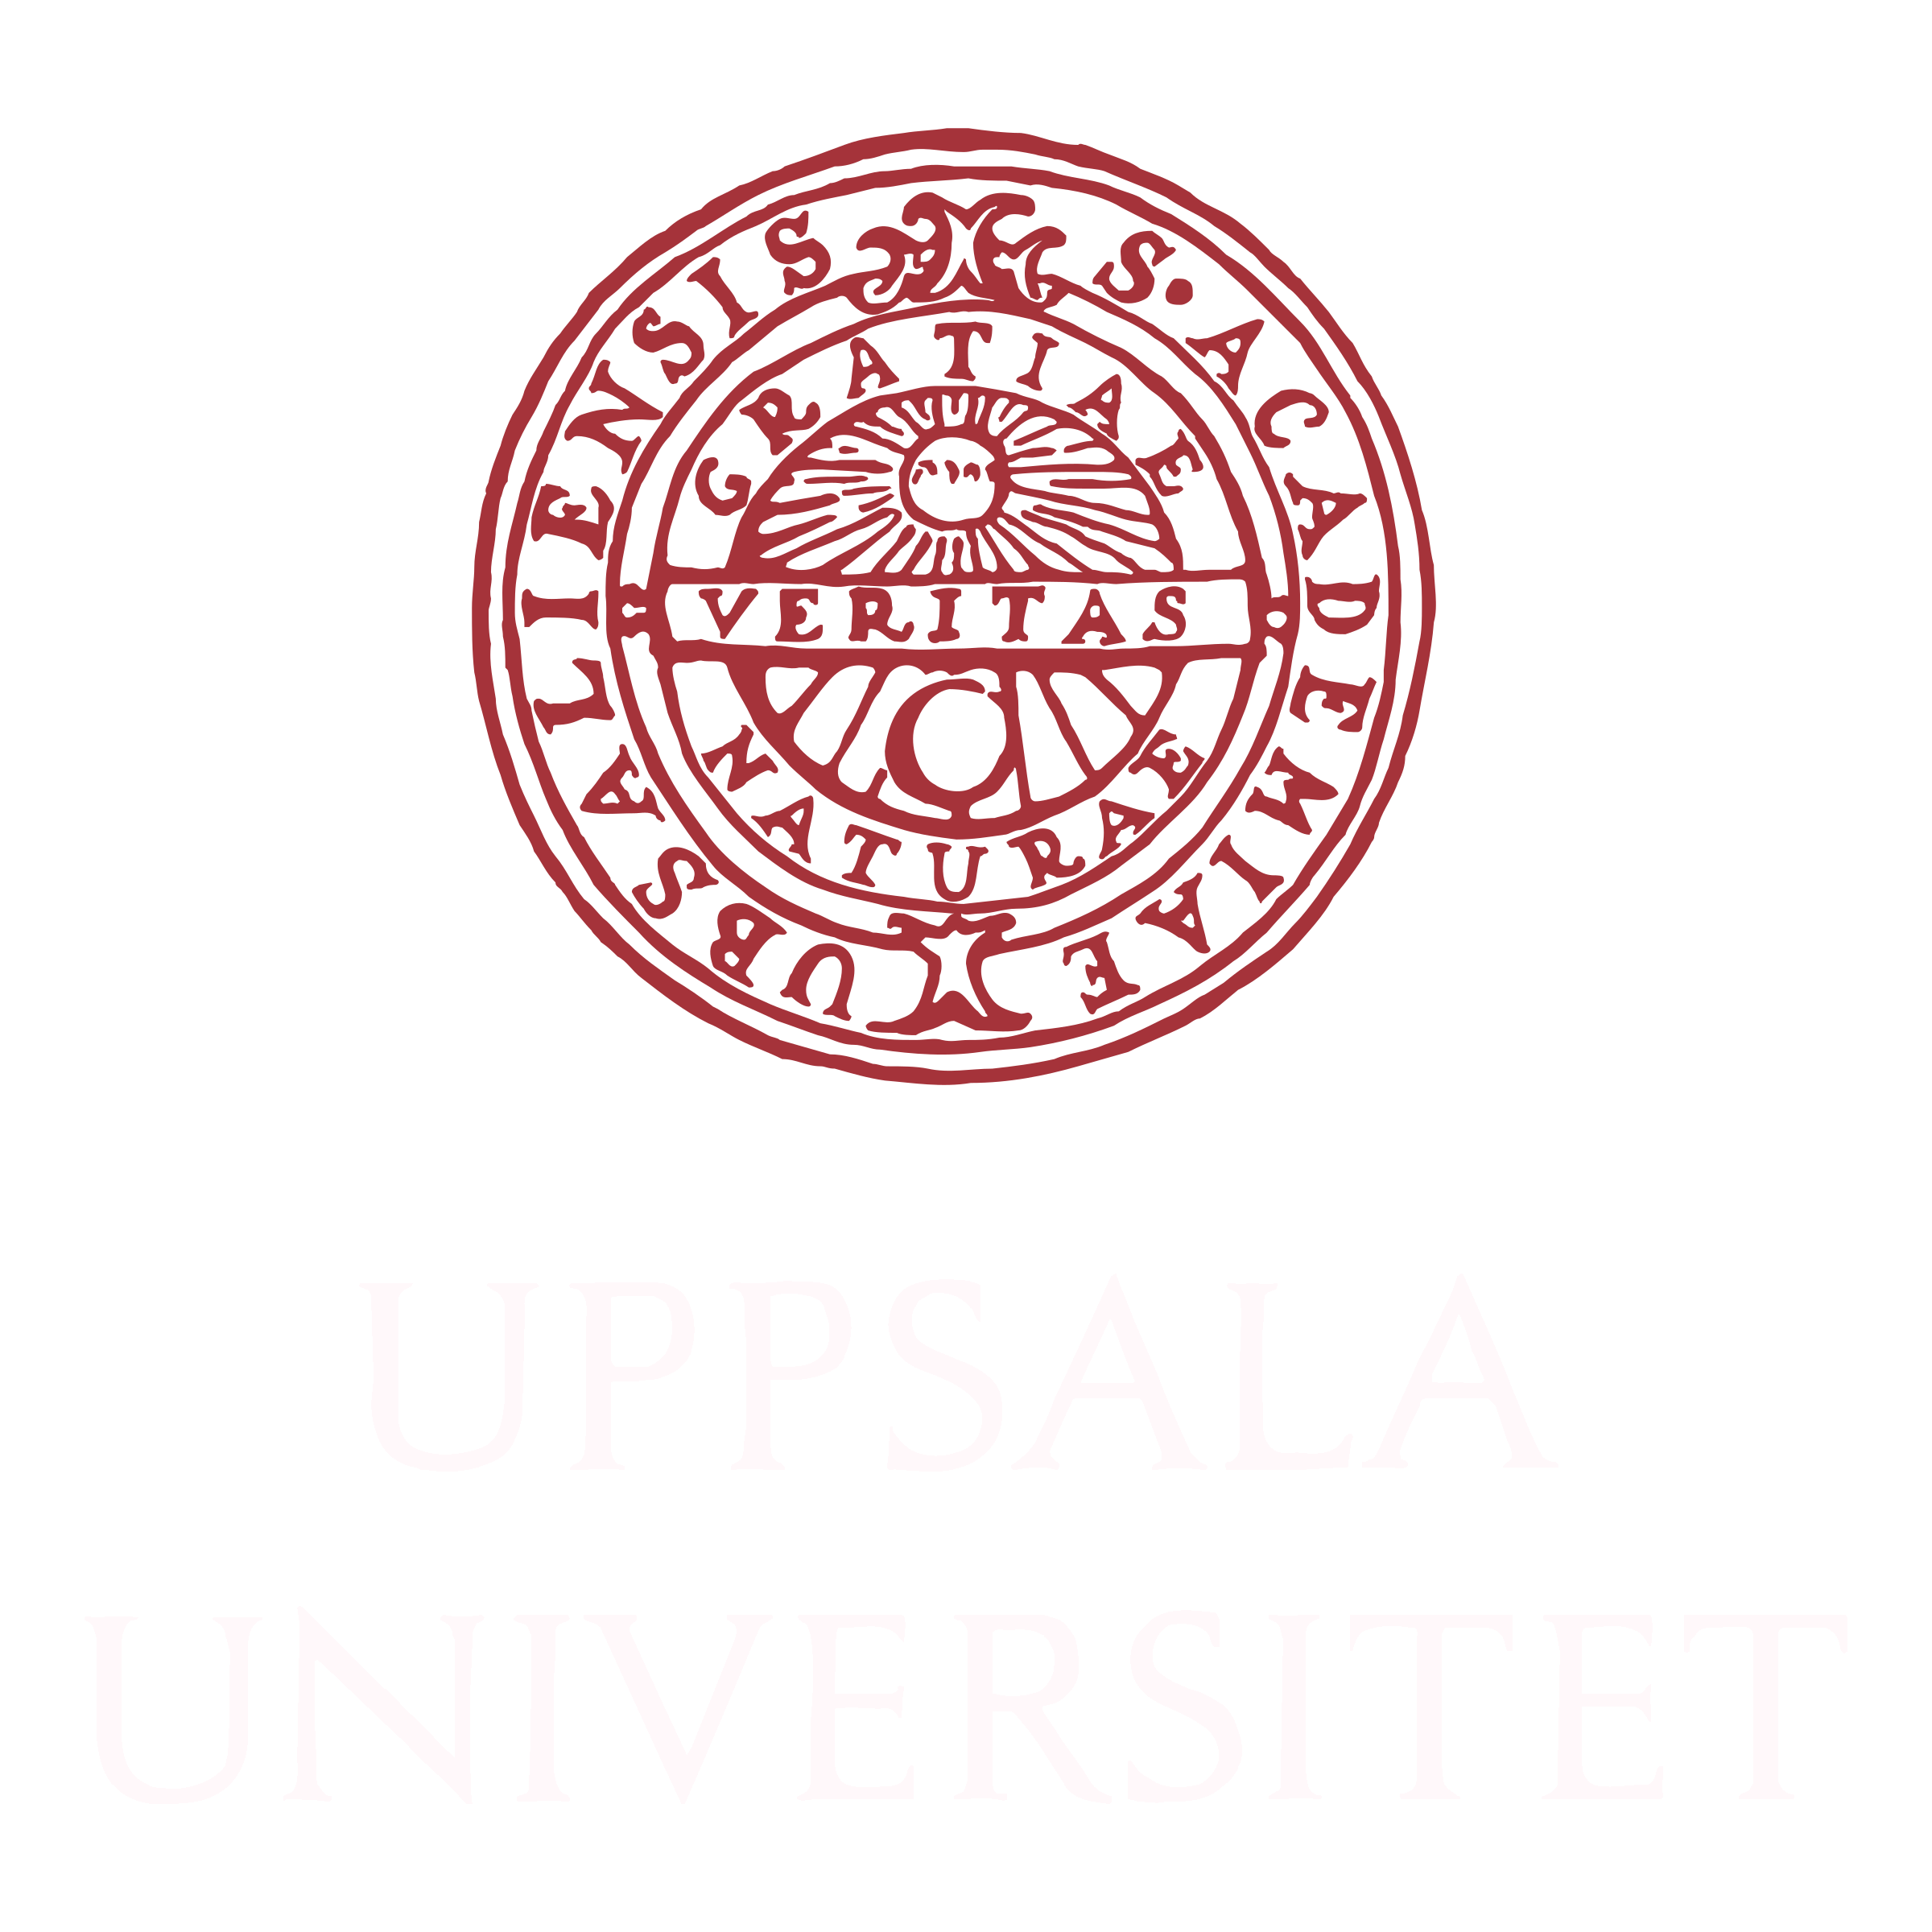 uppsala-universitet-logo-png-transparent copy.png